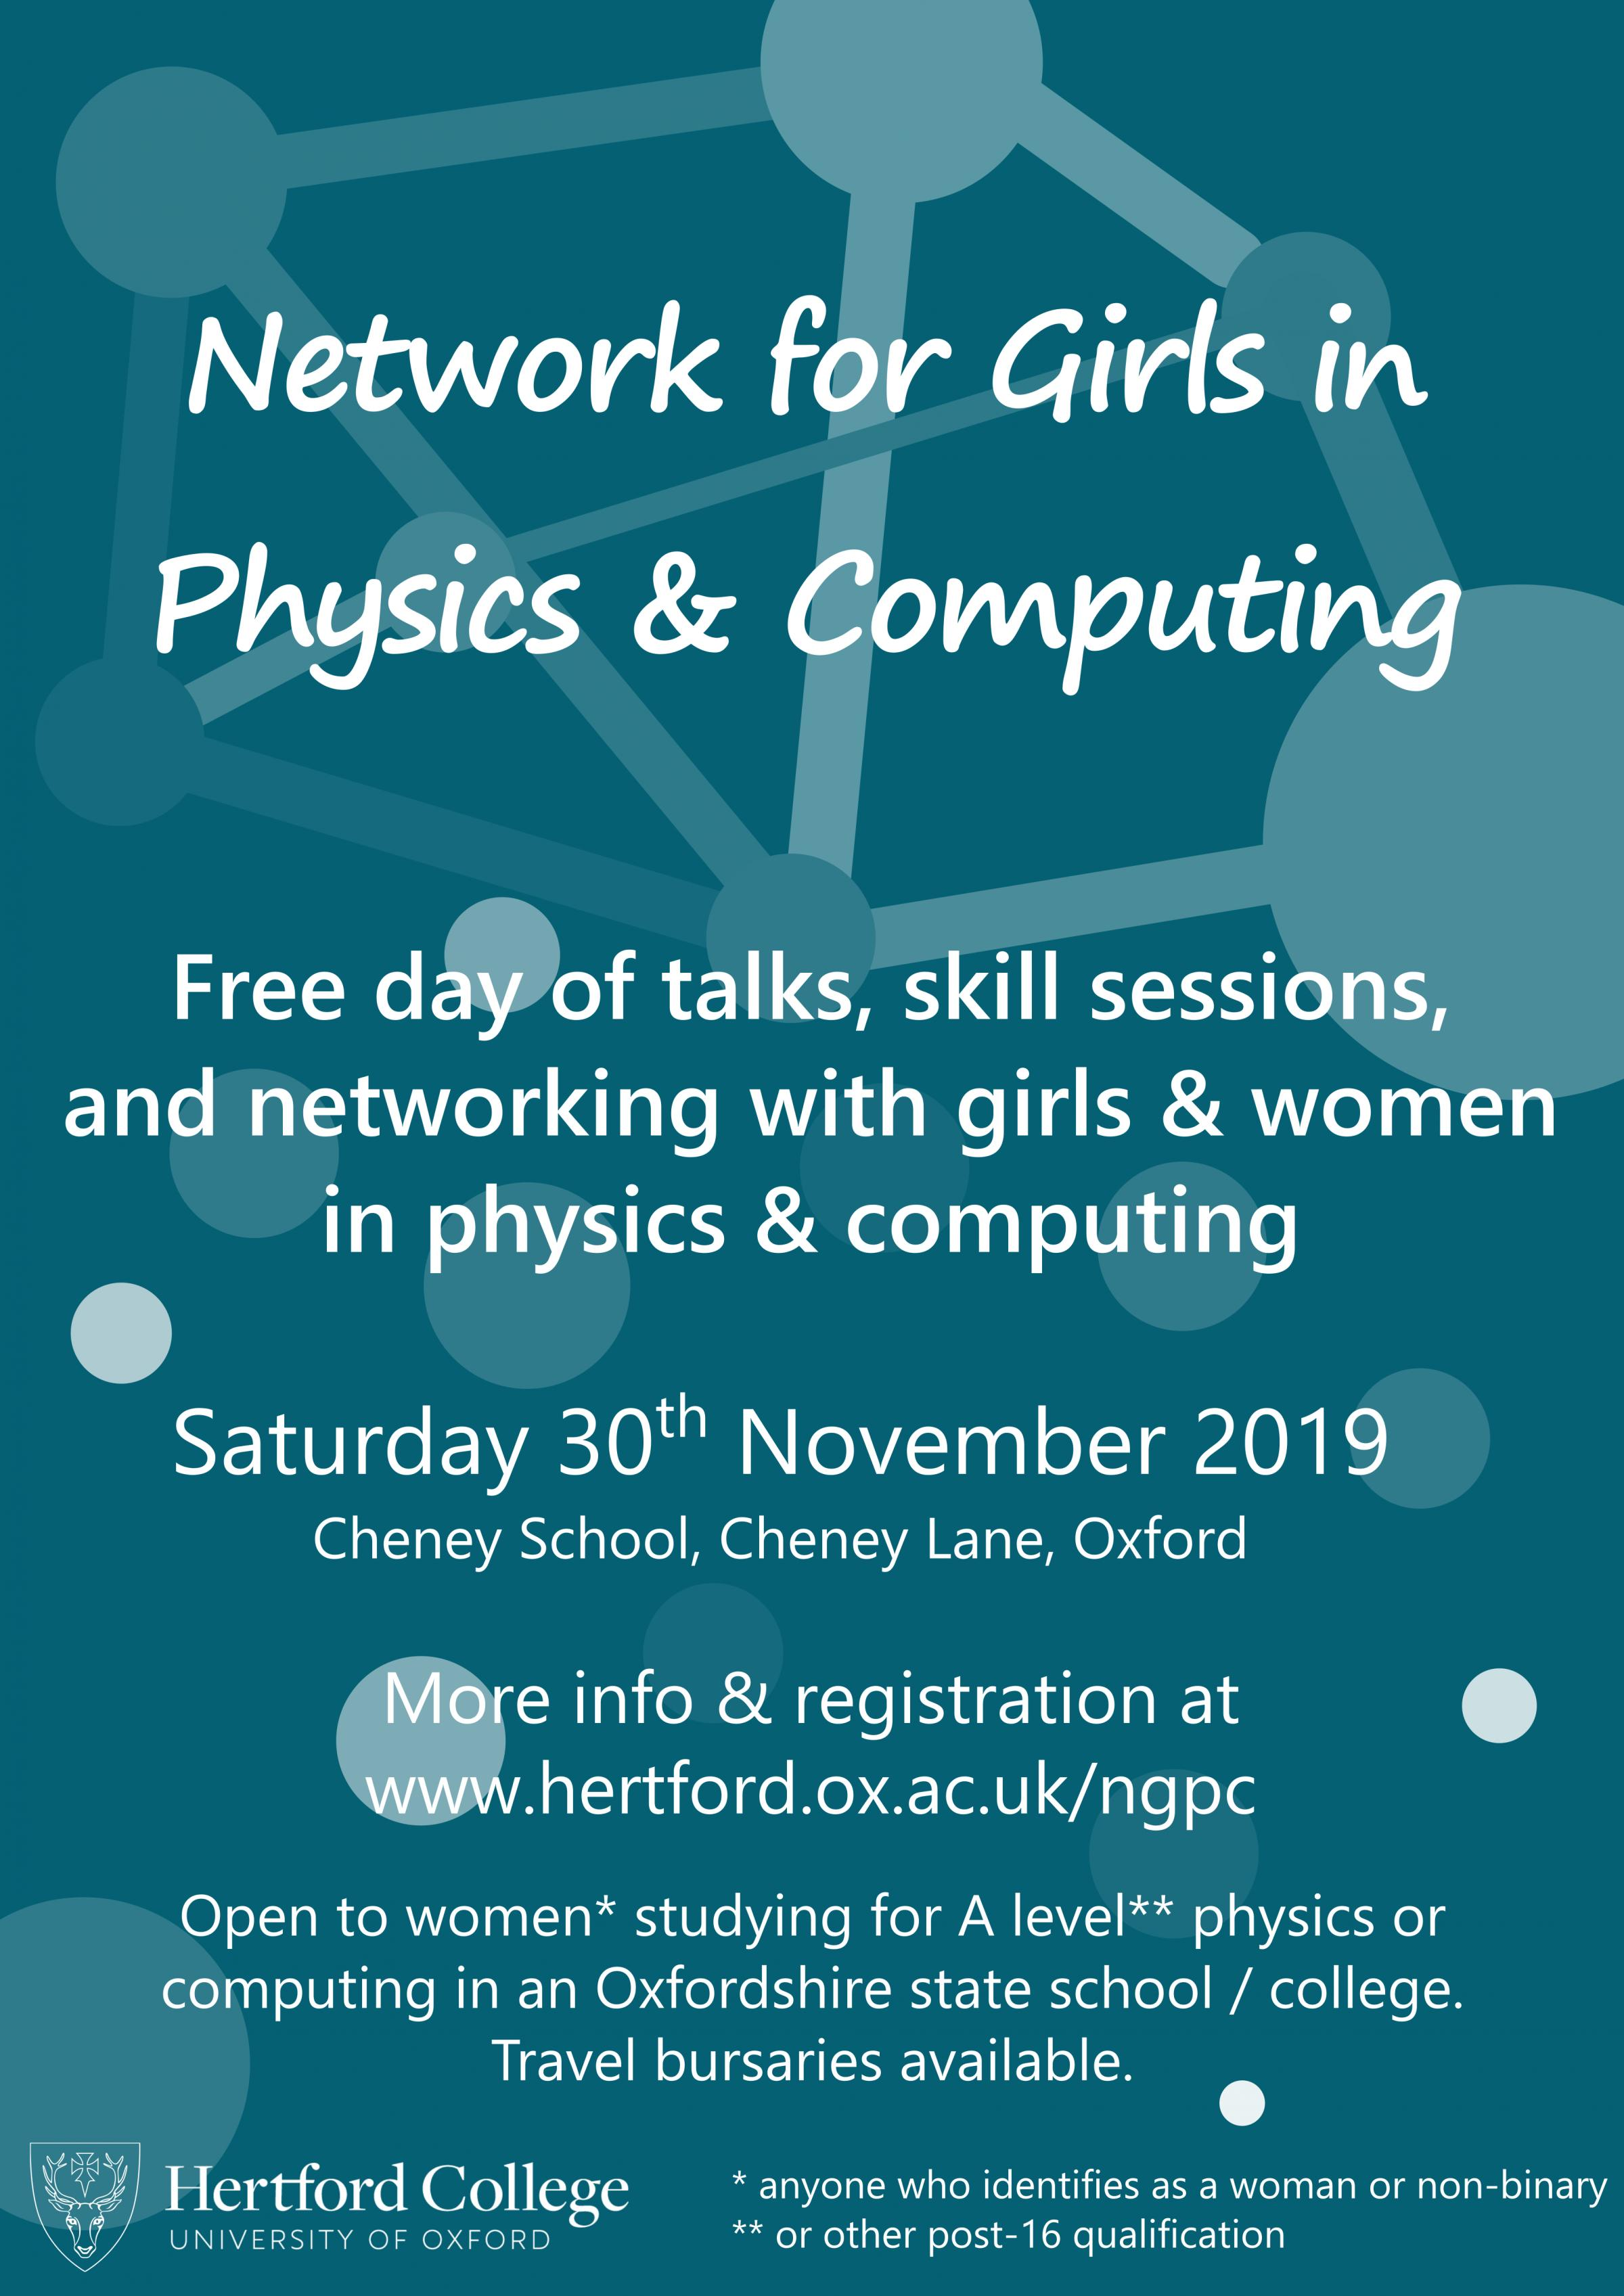 Network for Girls in Physics & Computing